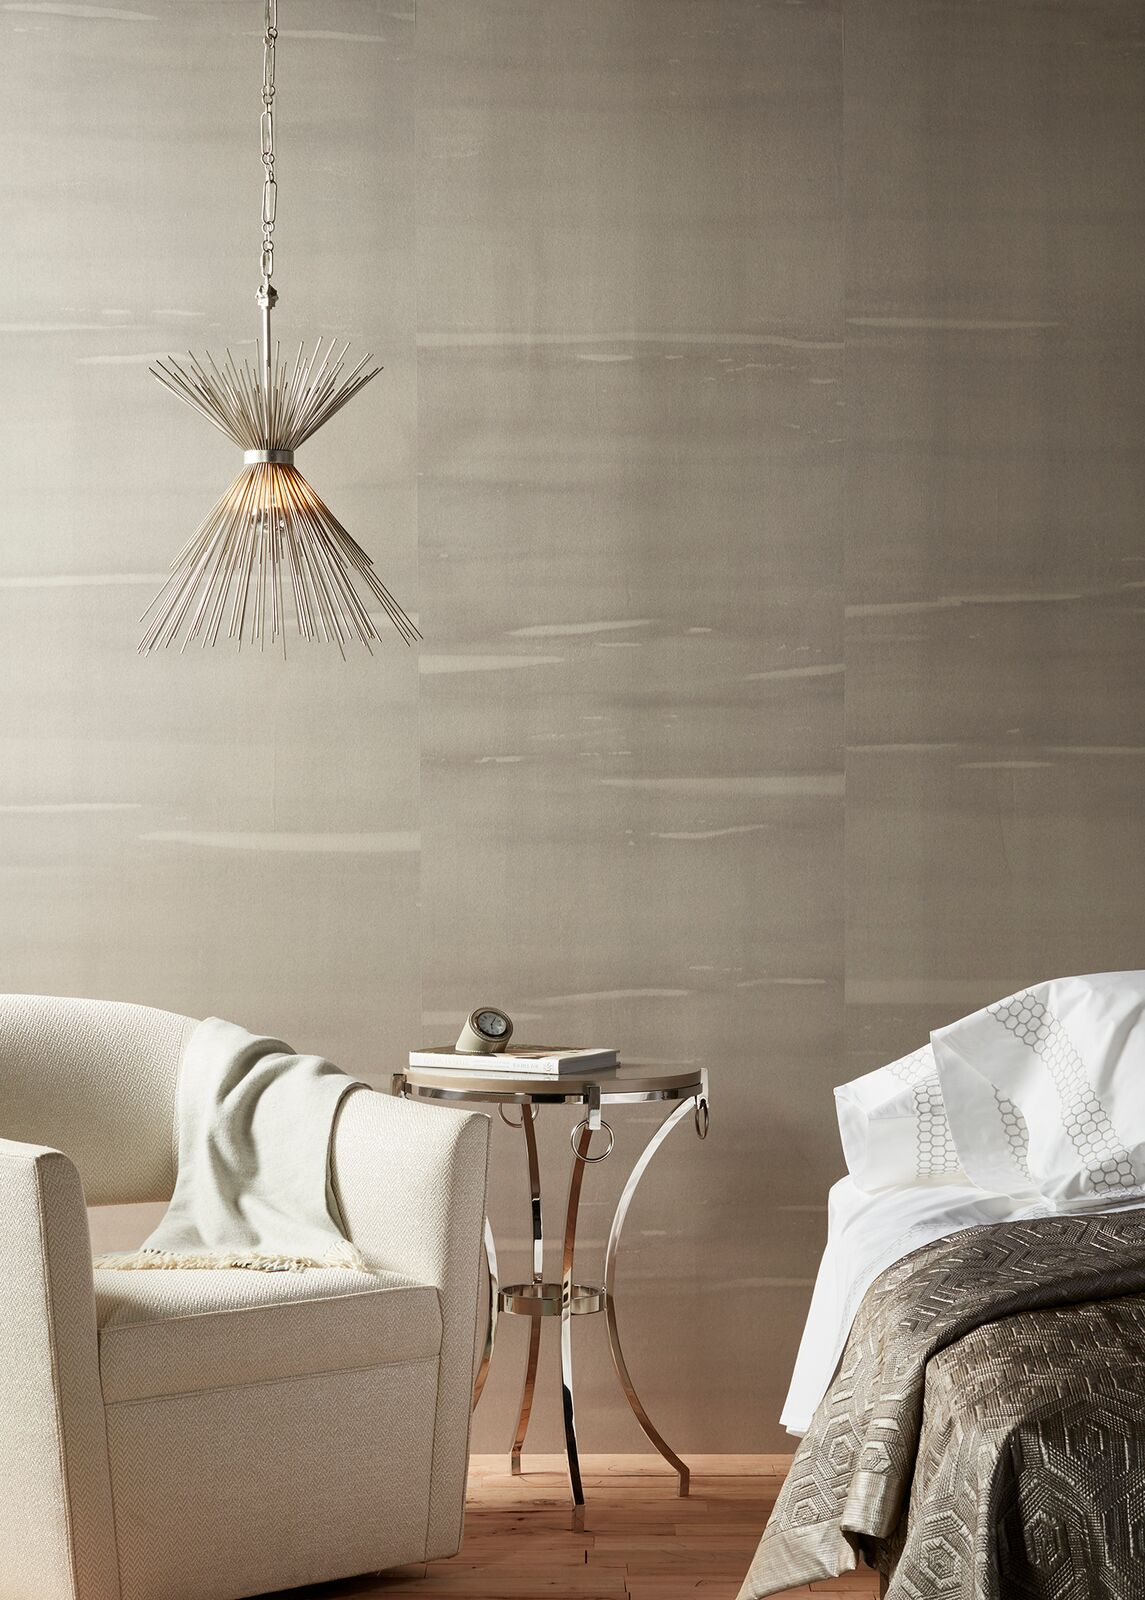 The Brilliant Weathered Metals Is Now Offered In Drama Inducing Dark Hues Like Gilded Bark Below